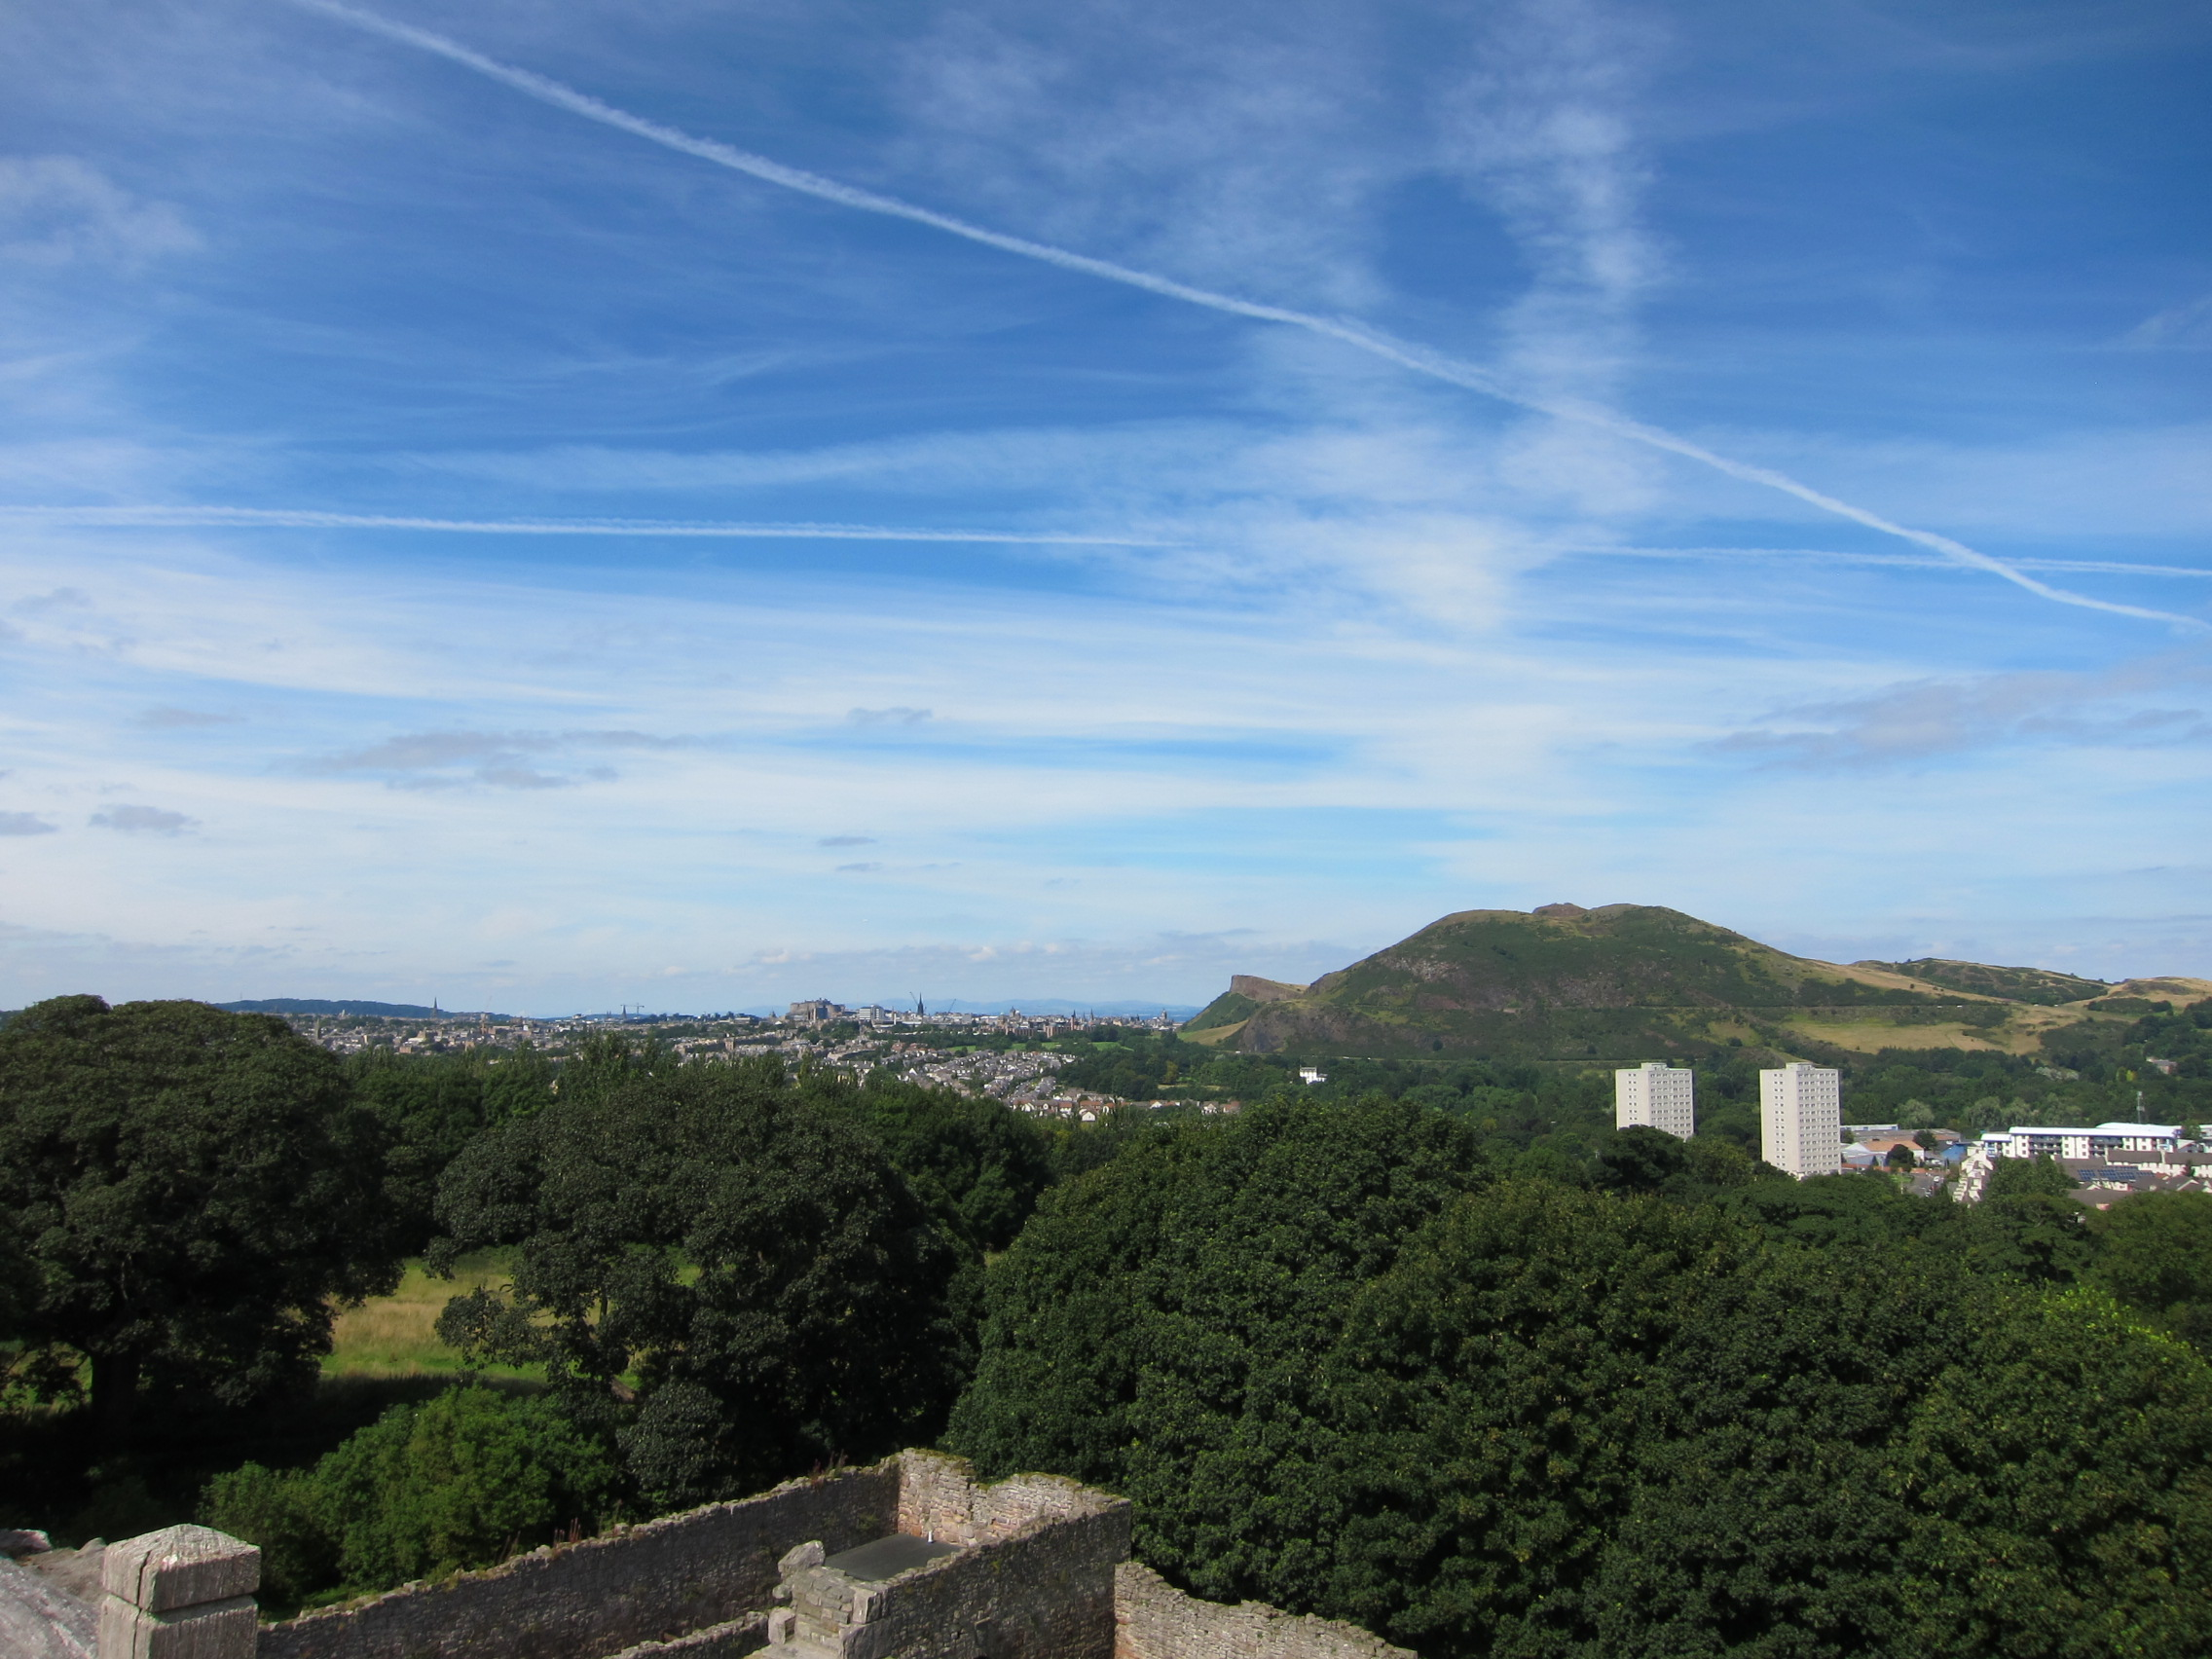 View from Craigmillar Castle